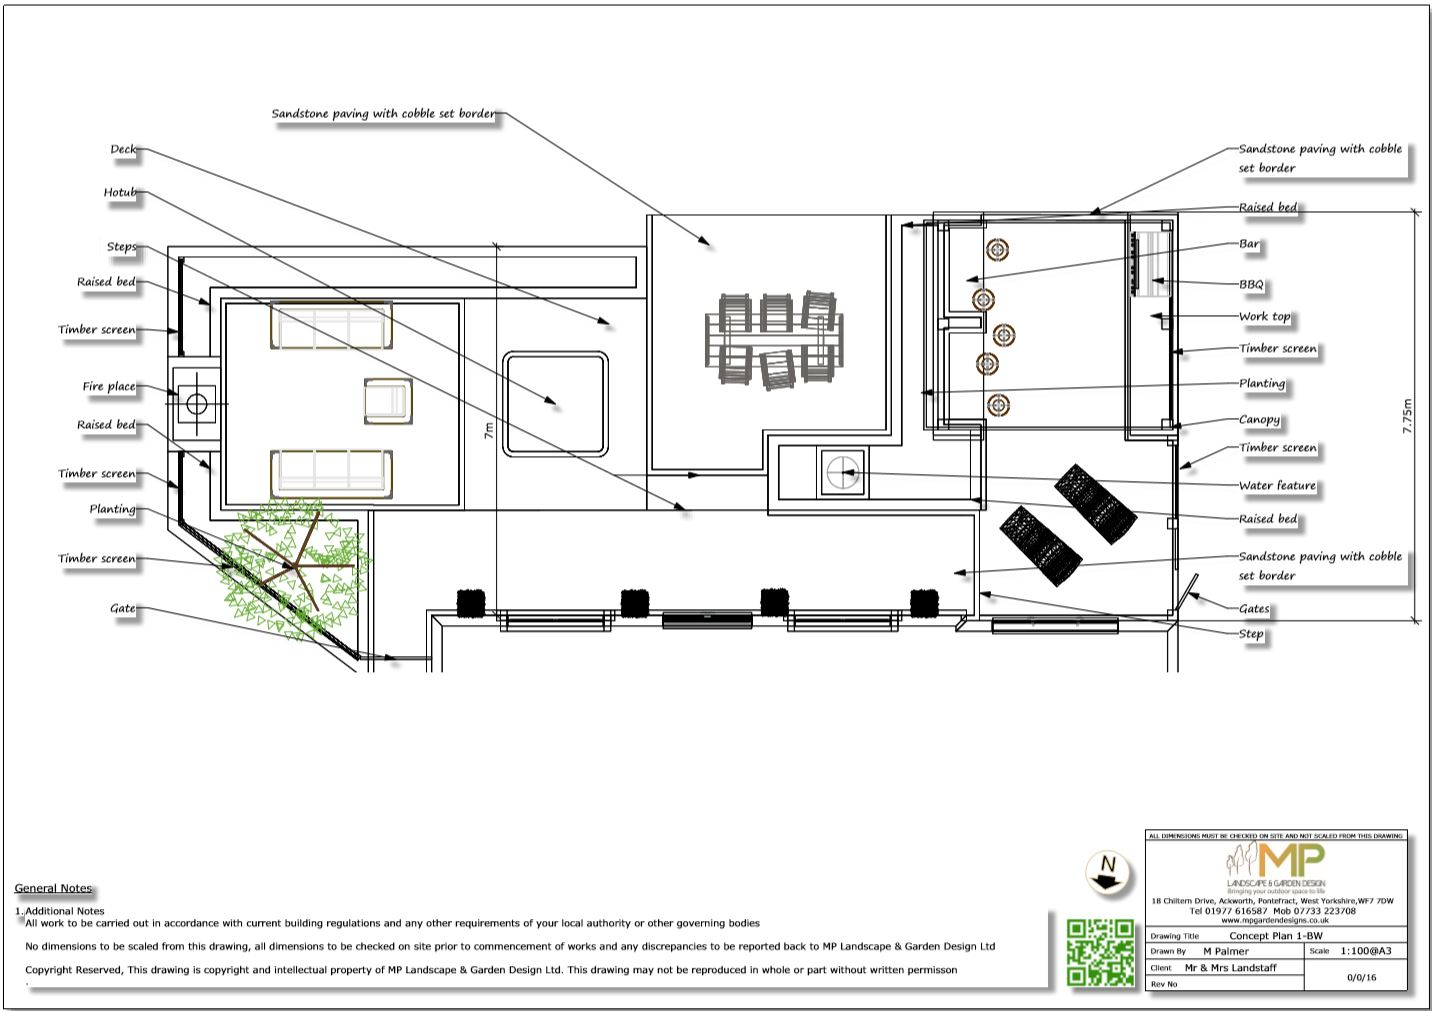 2. Concept plan for a rear patio area in Wakefield